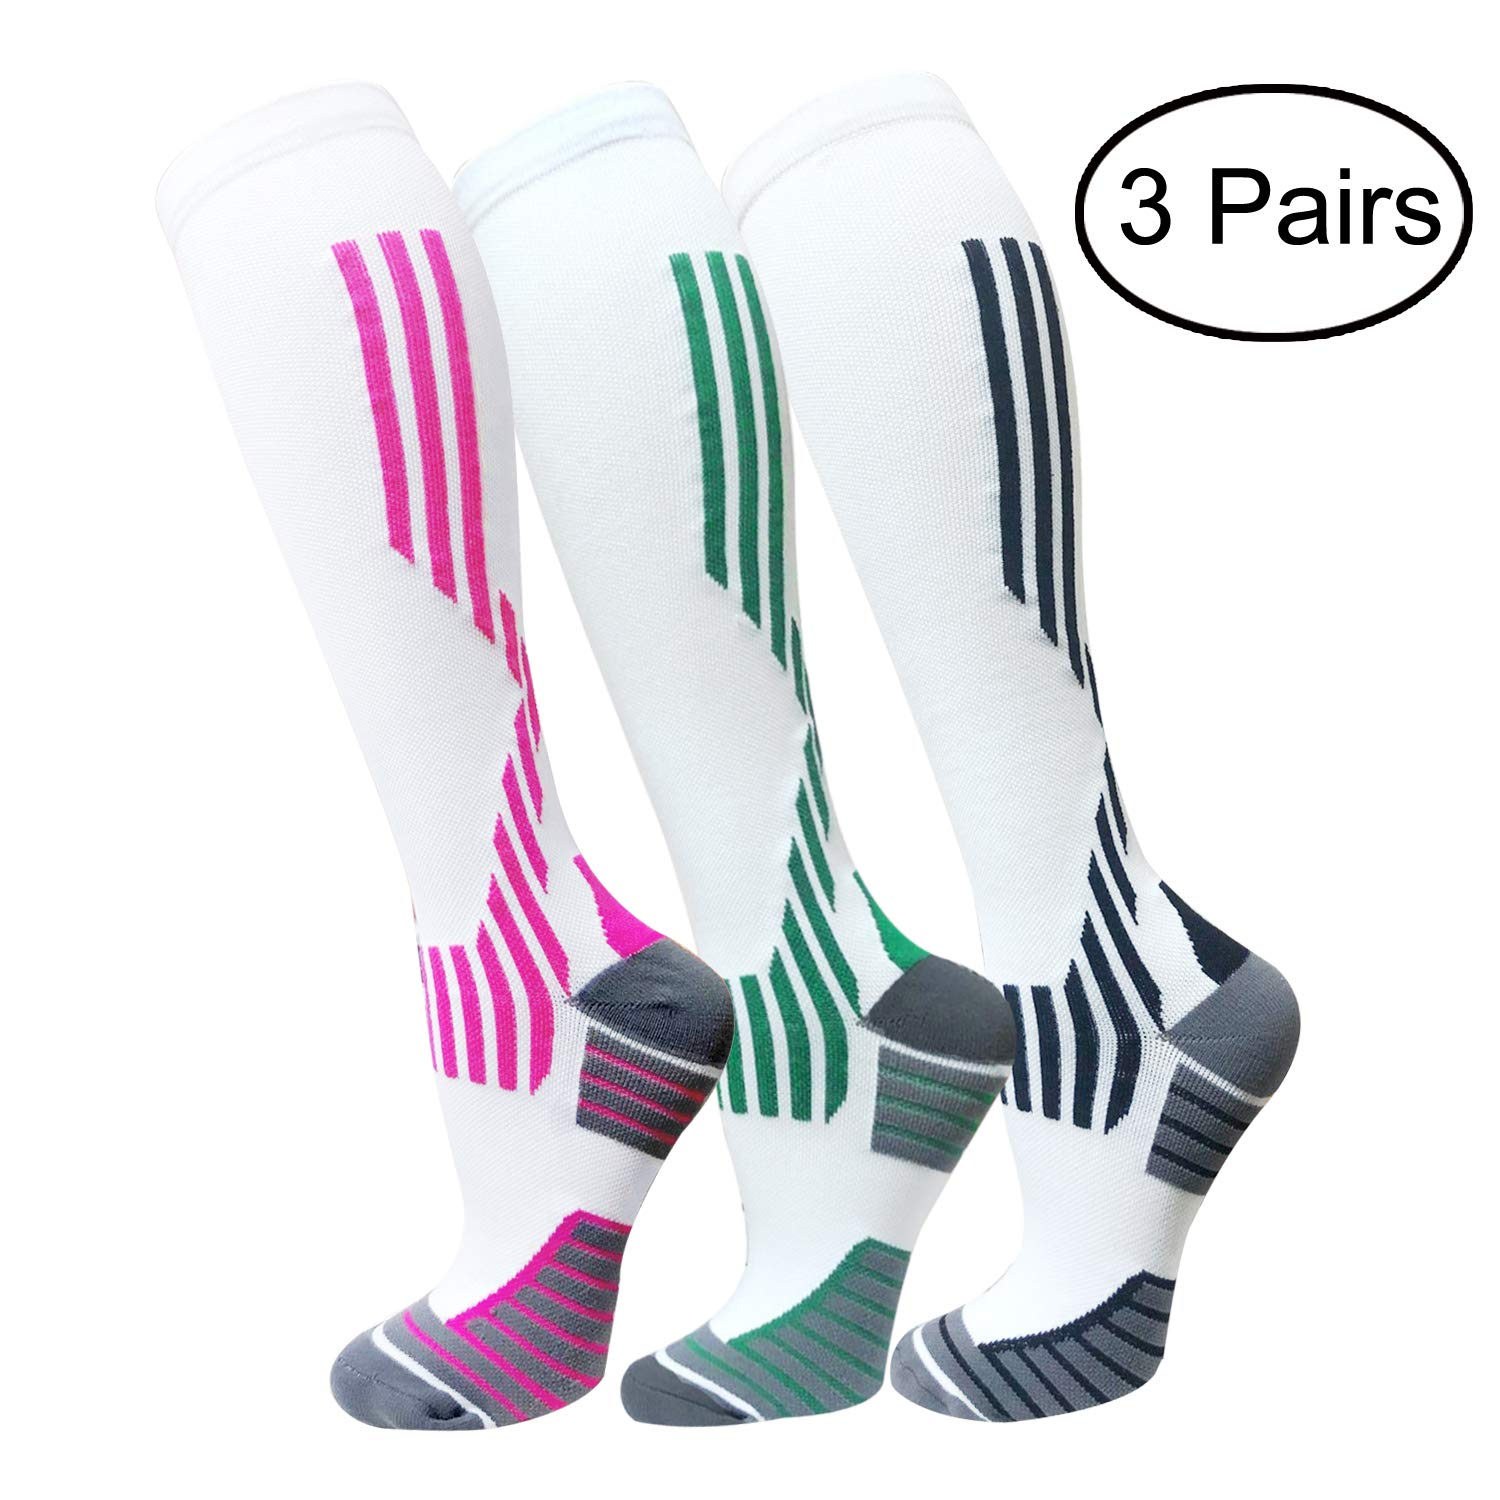 Copper Compression Socks For Men & Women(3 Pairs)- Best For Running,Athletic,Medical,Pregnancy and Travel -15-20mmHg (S/M, Multicoloured 11)